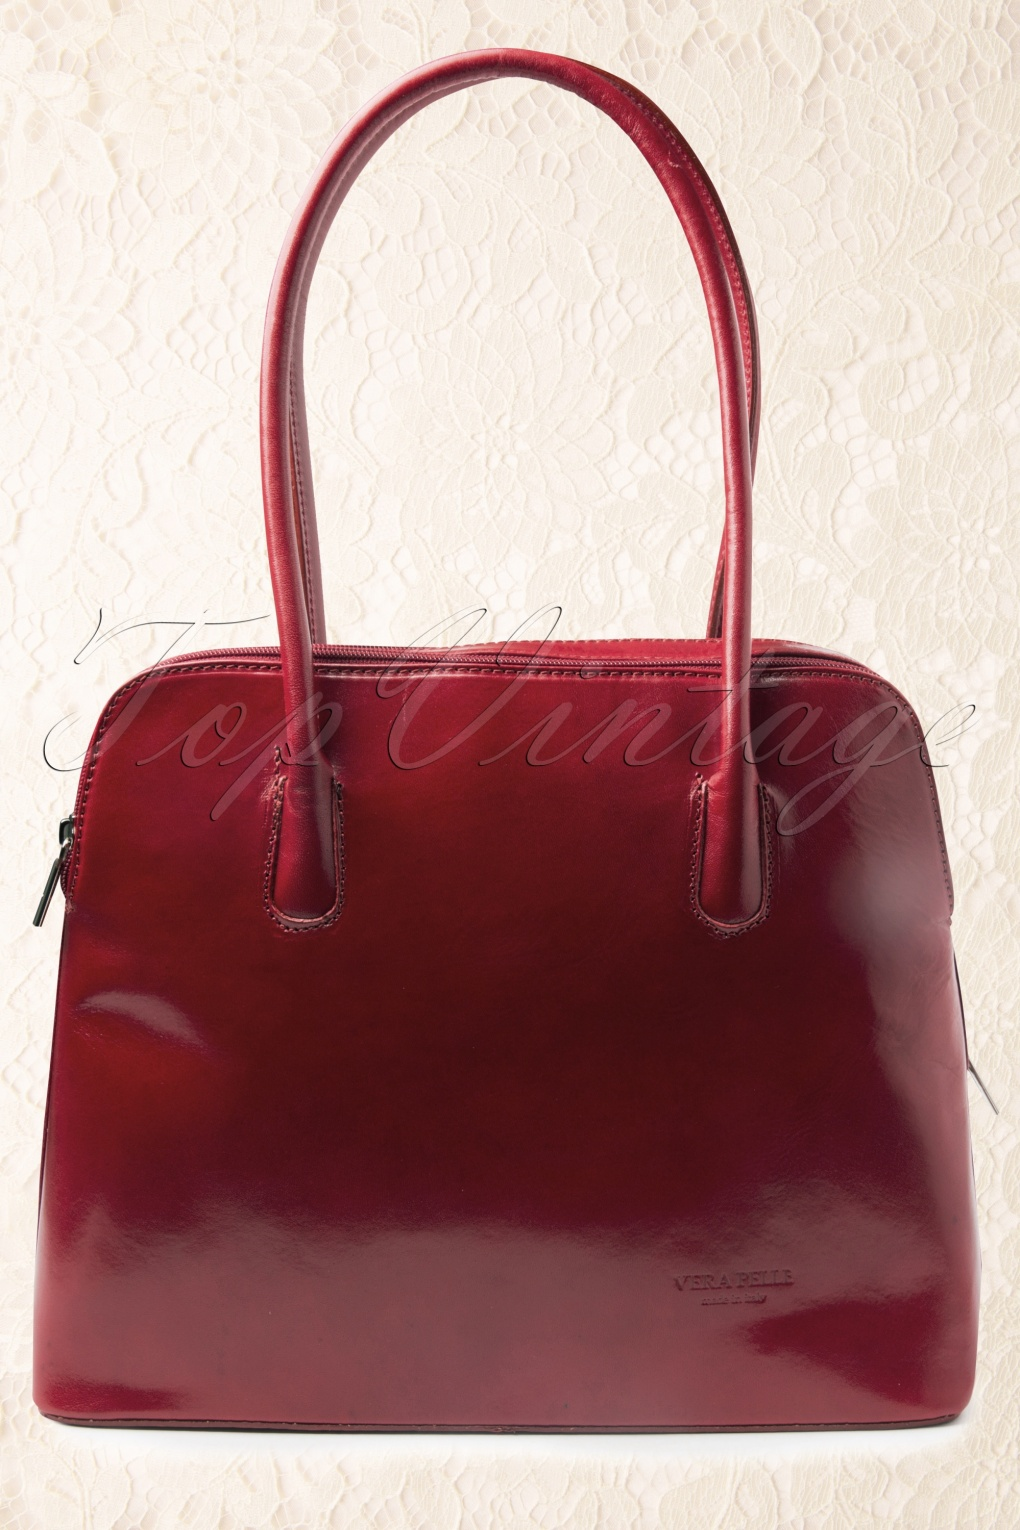 Retro Handbags, Purses, Wallets, Bags 70s Classic Bag in Cherry Red genuine leather £59.41 AT vintagedancer.com